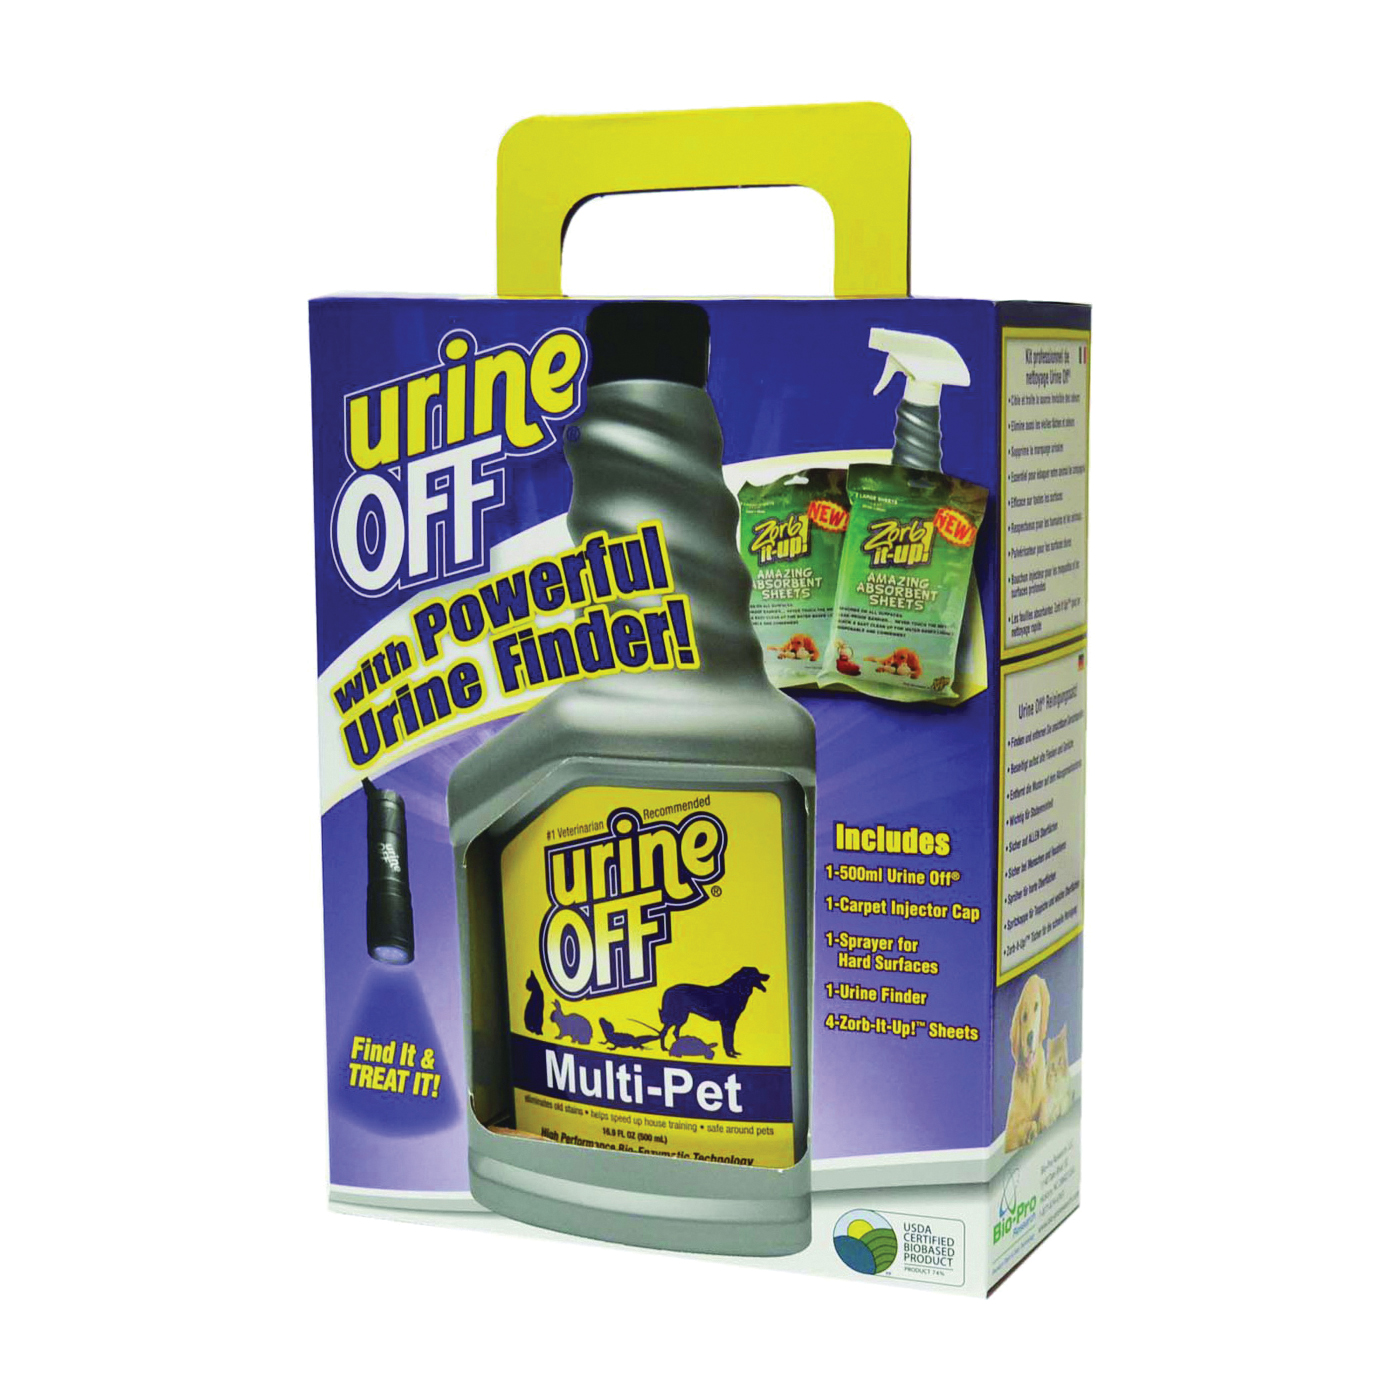 Picture of urine OFF MR1115 Pet Sprayer, 16.9 oz Package